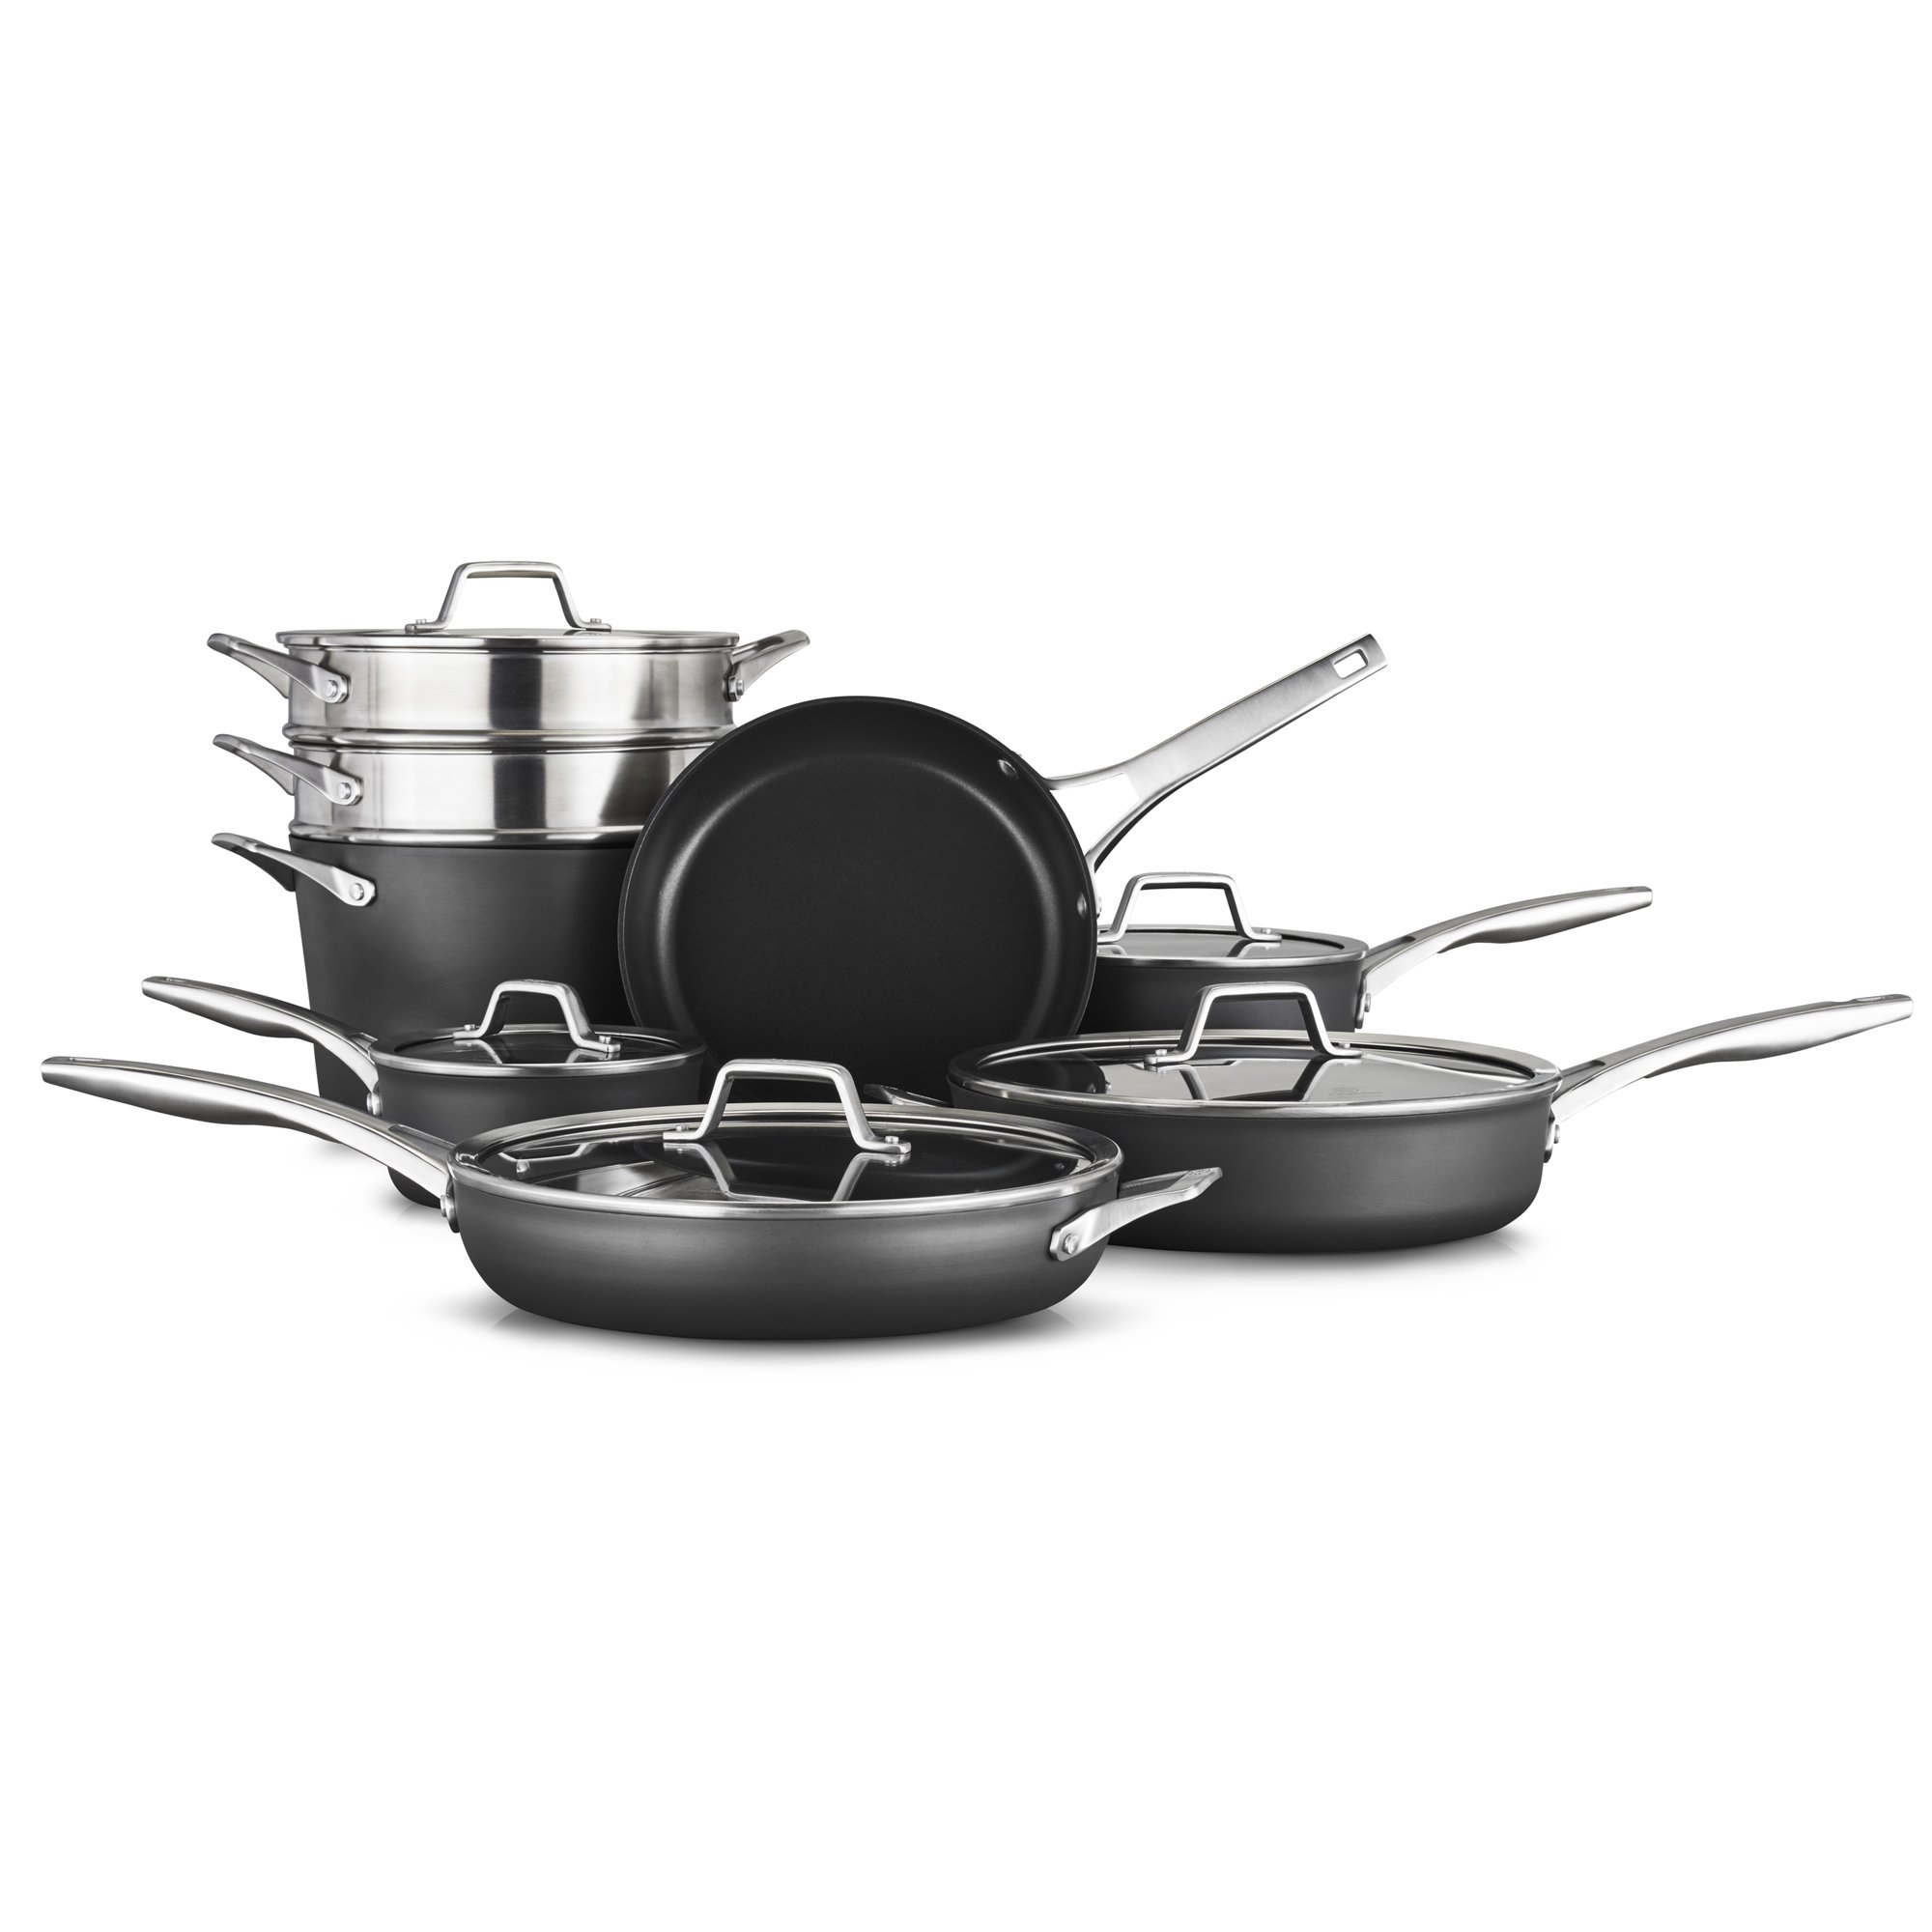 Calphalon Premier Hard-Anodized Nonstick Cookware 13-Piece Cookware Set